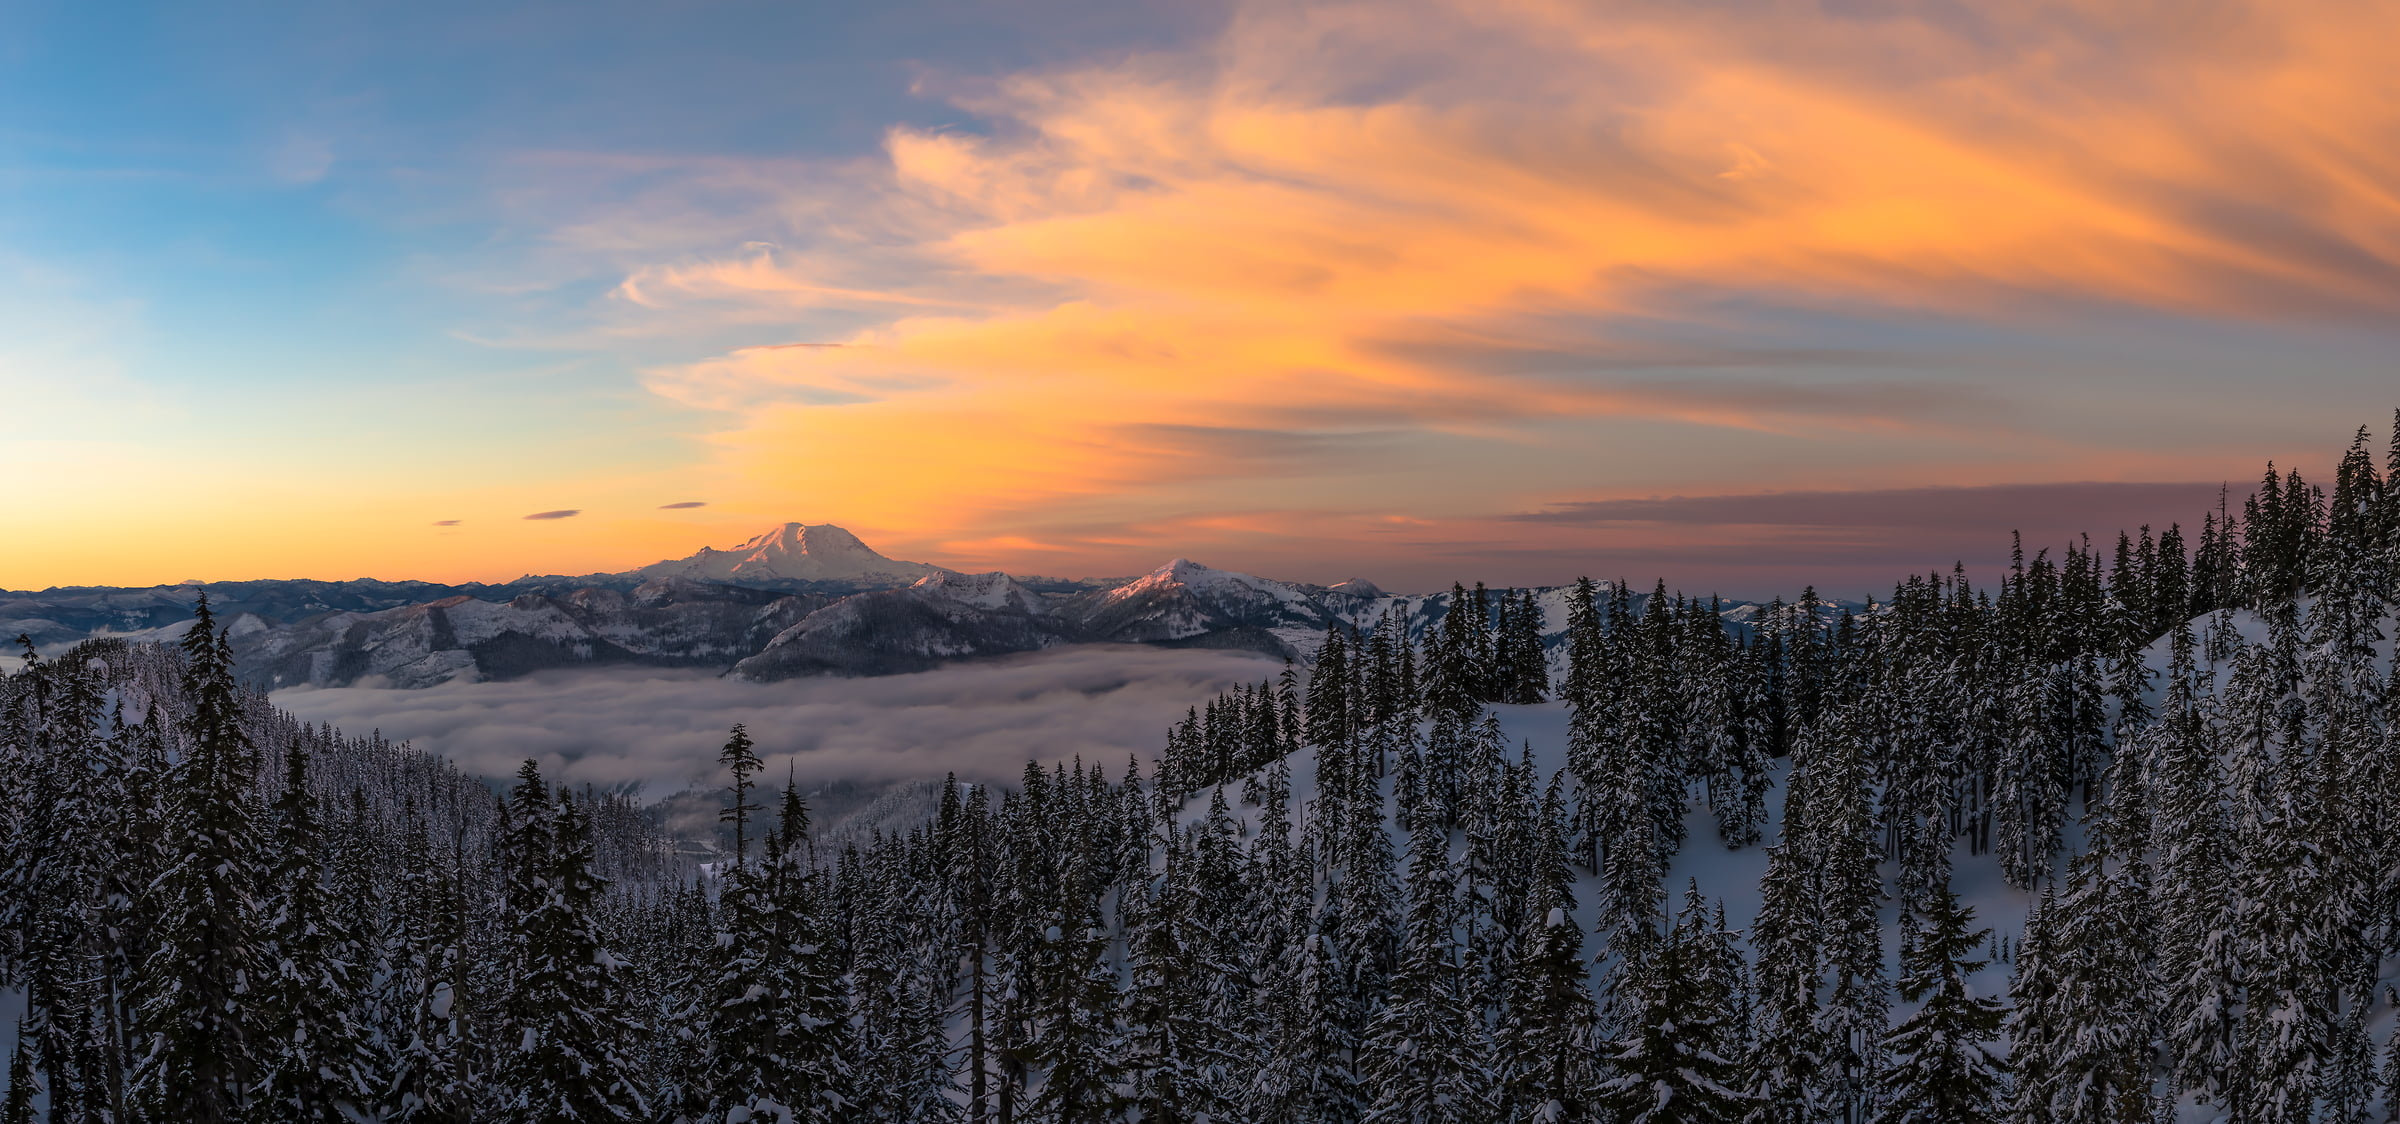 A very high resolution, large-format VAST photo print of Mount Rainier and the Cascade Mountains; fine art landscape photo created by Scott Rinckenberger from Kendall Peak in Washington, USA